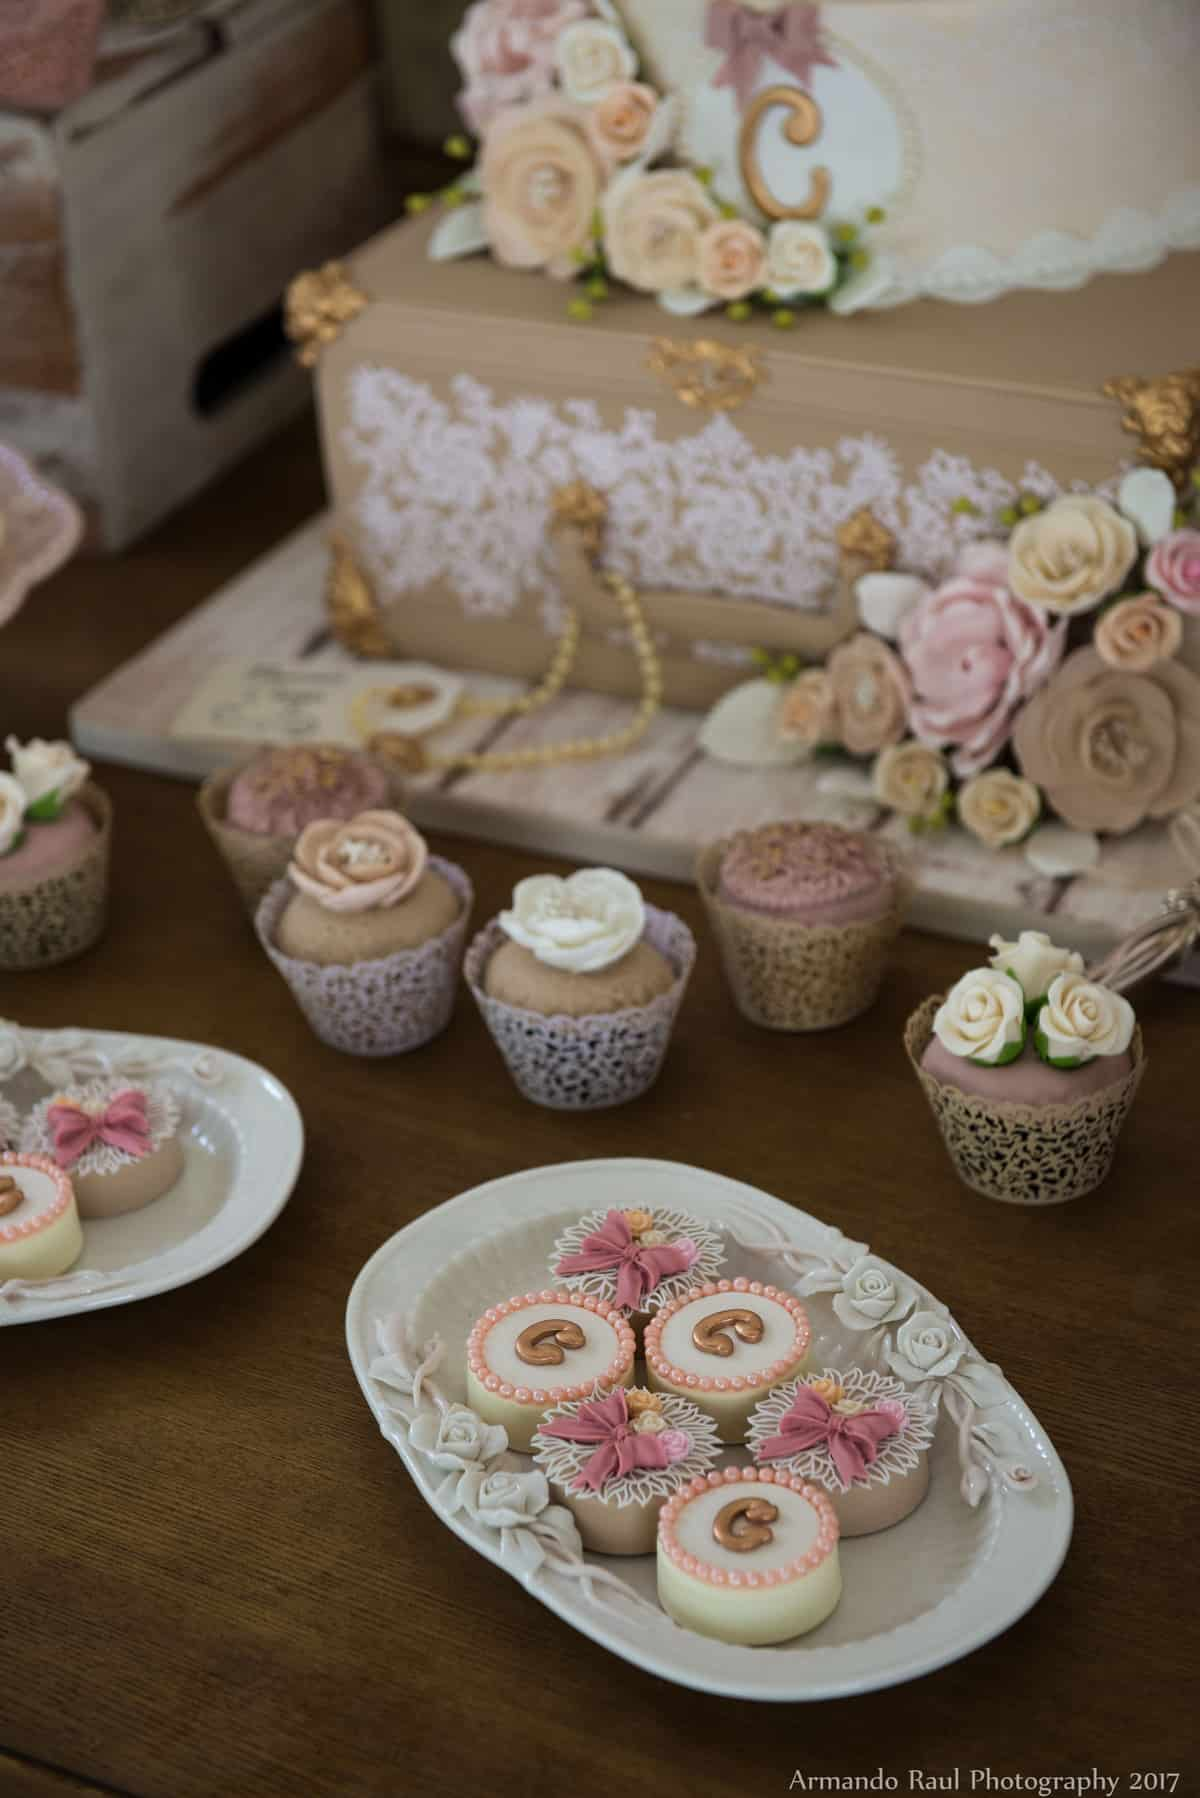 Cupcakes & Chocolate Covered Oreos on the Dessert Table | Girl Baby Shower Cake with Vintage Luggage, Lace, Pink, Flowers, Pearls, Bows & a World Map | Vintage Travel Theme Baby Shower | Baby Girl | You Are My Greatest Adventure | Lace, World Map, Flowers, Cameras, Vintage Decor | Cake, Sweets, Desserts, Lounge Seating Area, World Cuisine, Food Stations, Seating Arrangement | Home Baby Shower | Blush Pink, Beige, Gold, Champagne, White